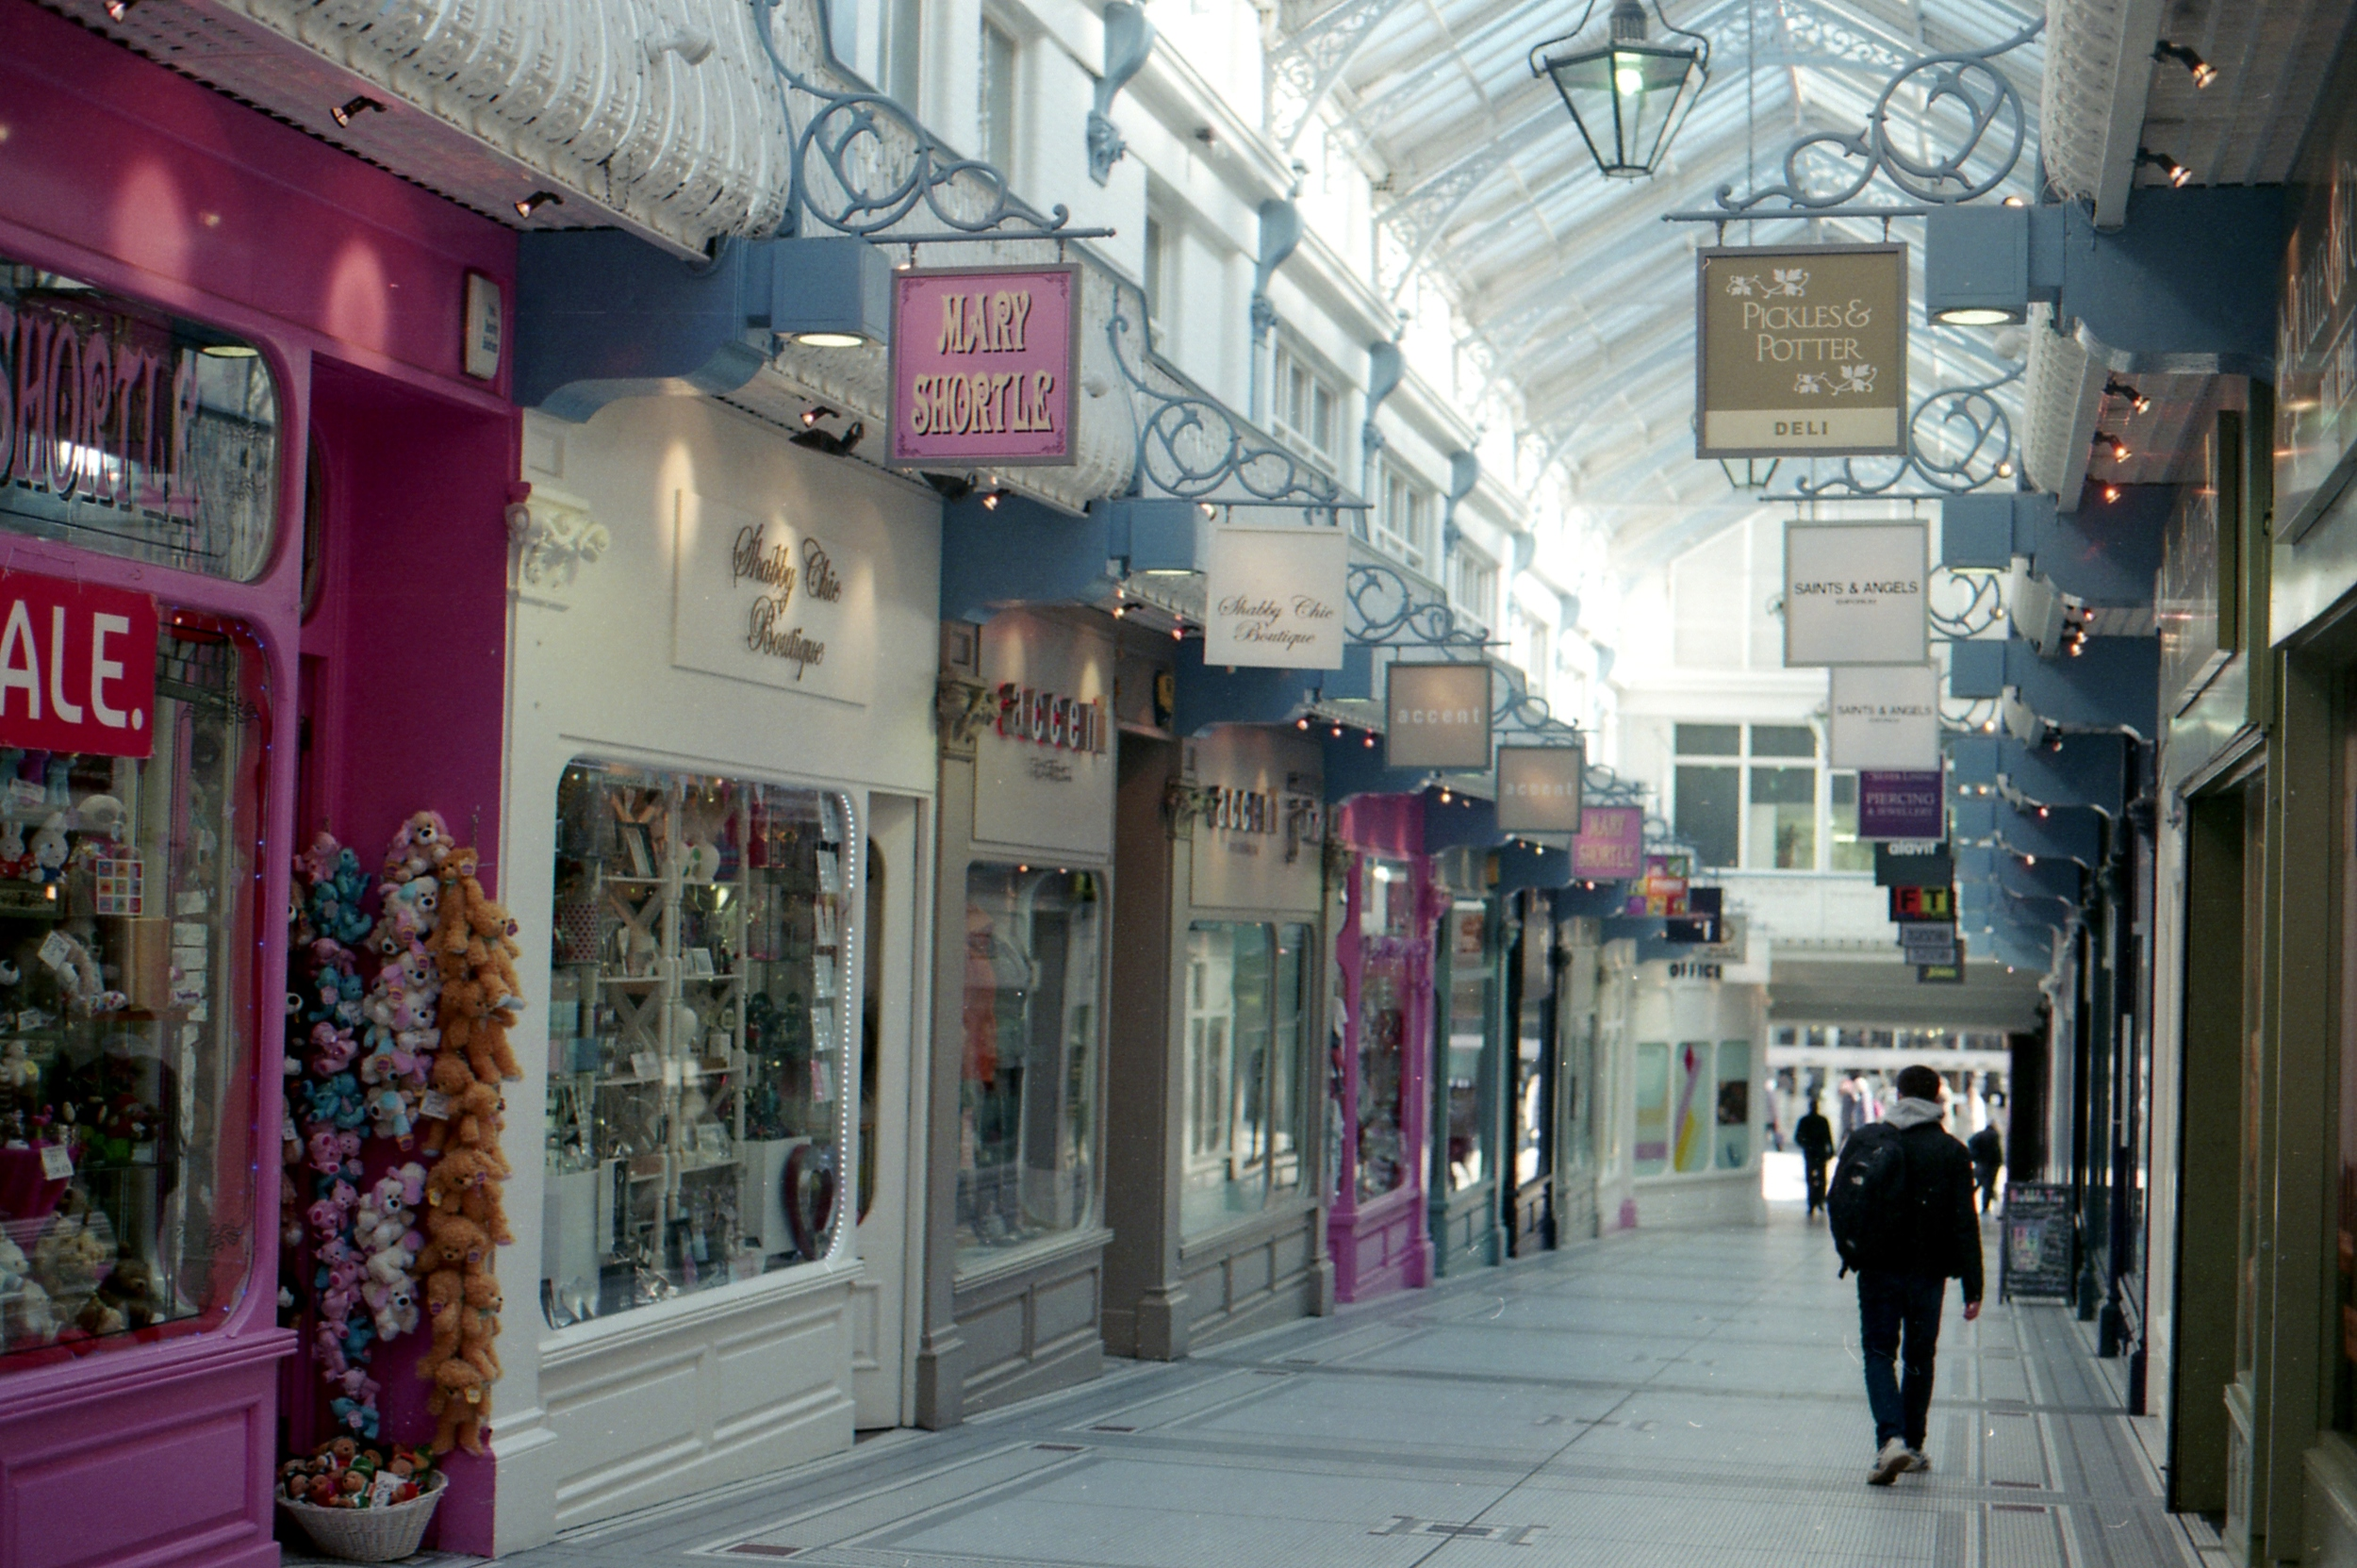 140/366 - Another one of Leeds shopping arcades